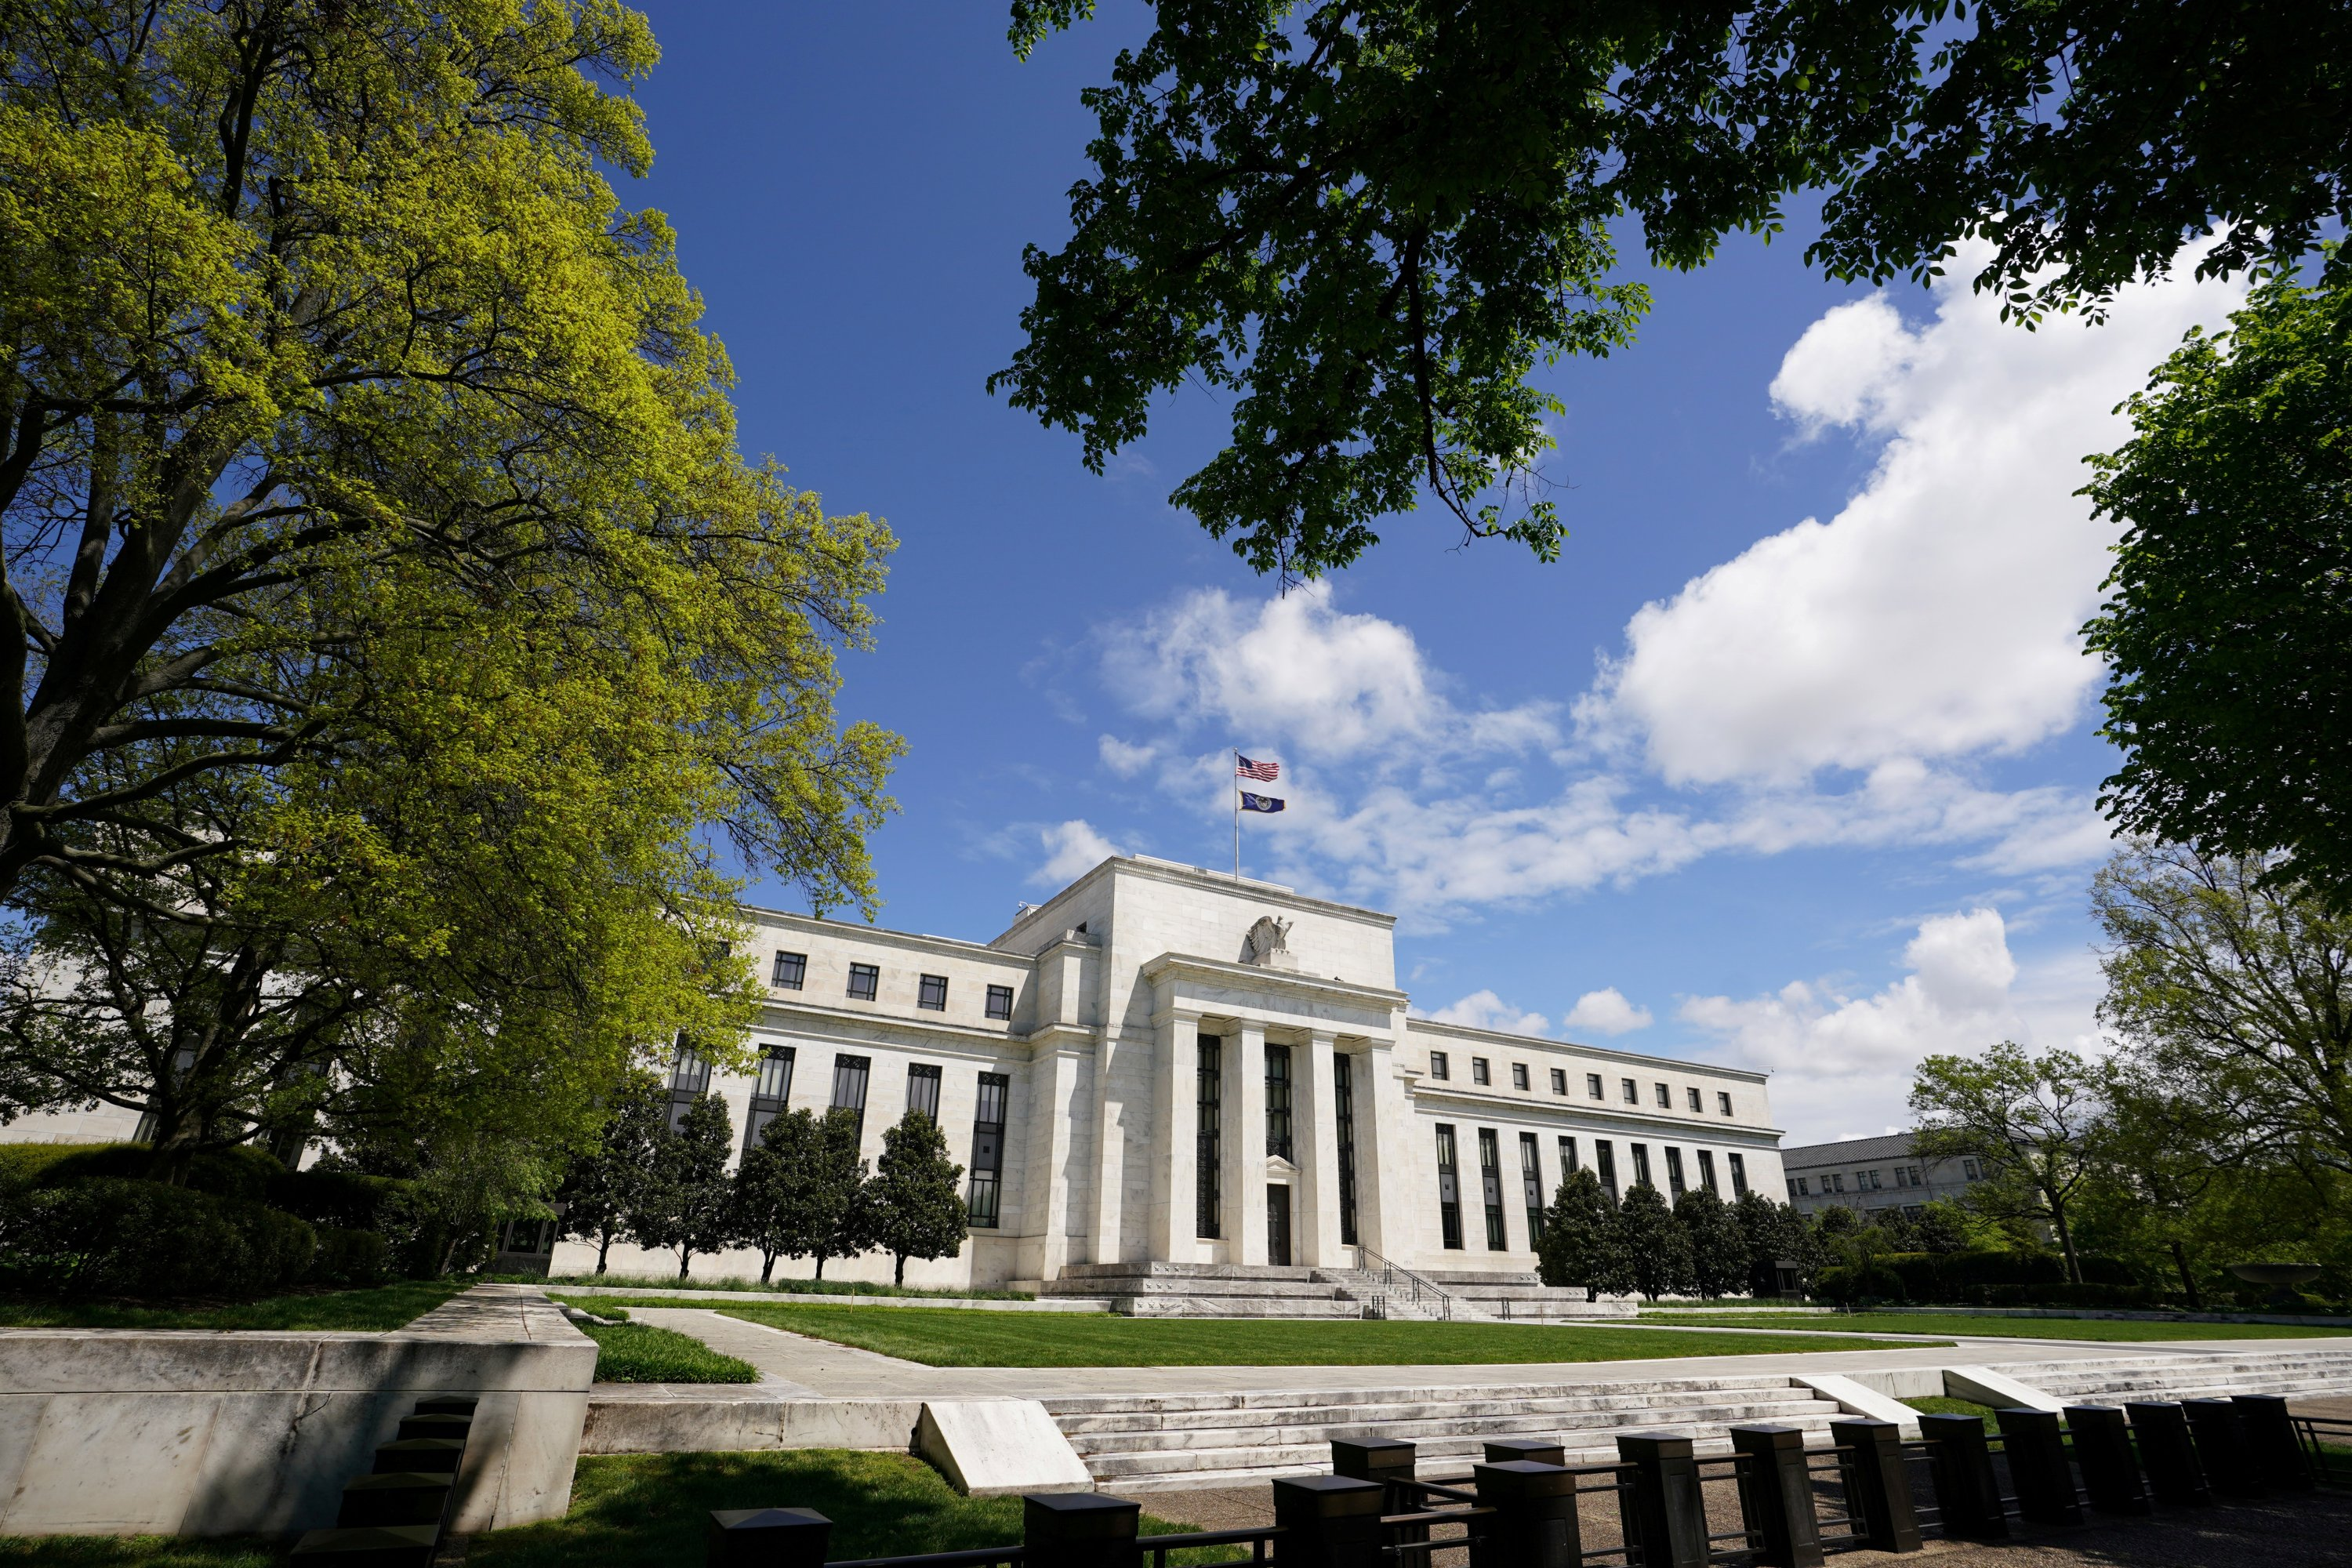 A headache: Fed's strategy shift to question central banking, challenge policymakers from Frankfurt to Tokyo thumbnail